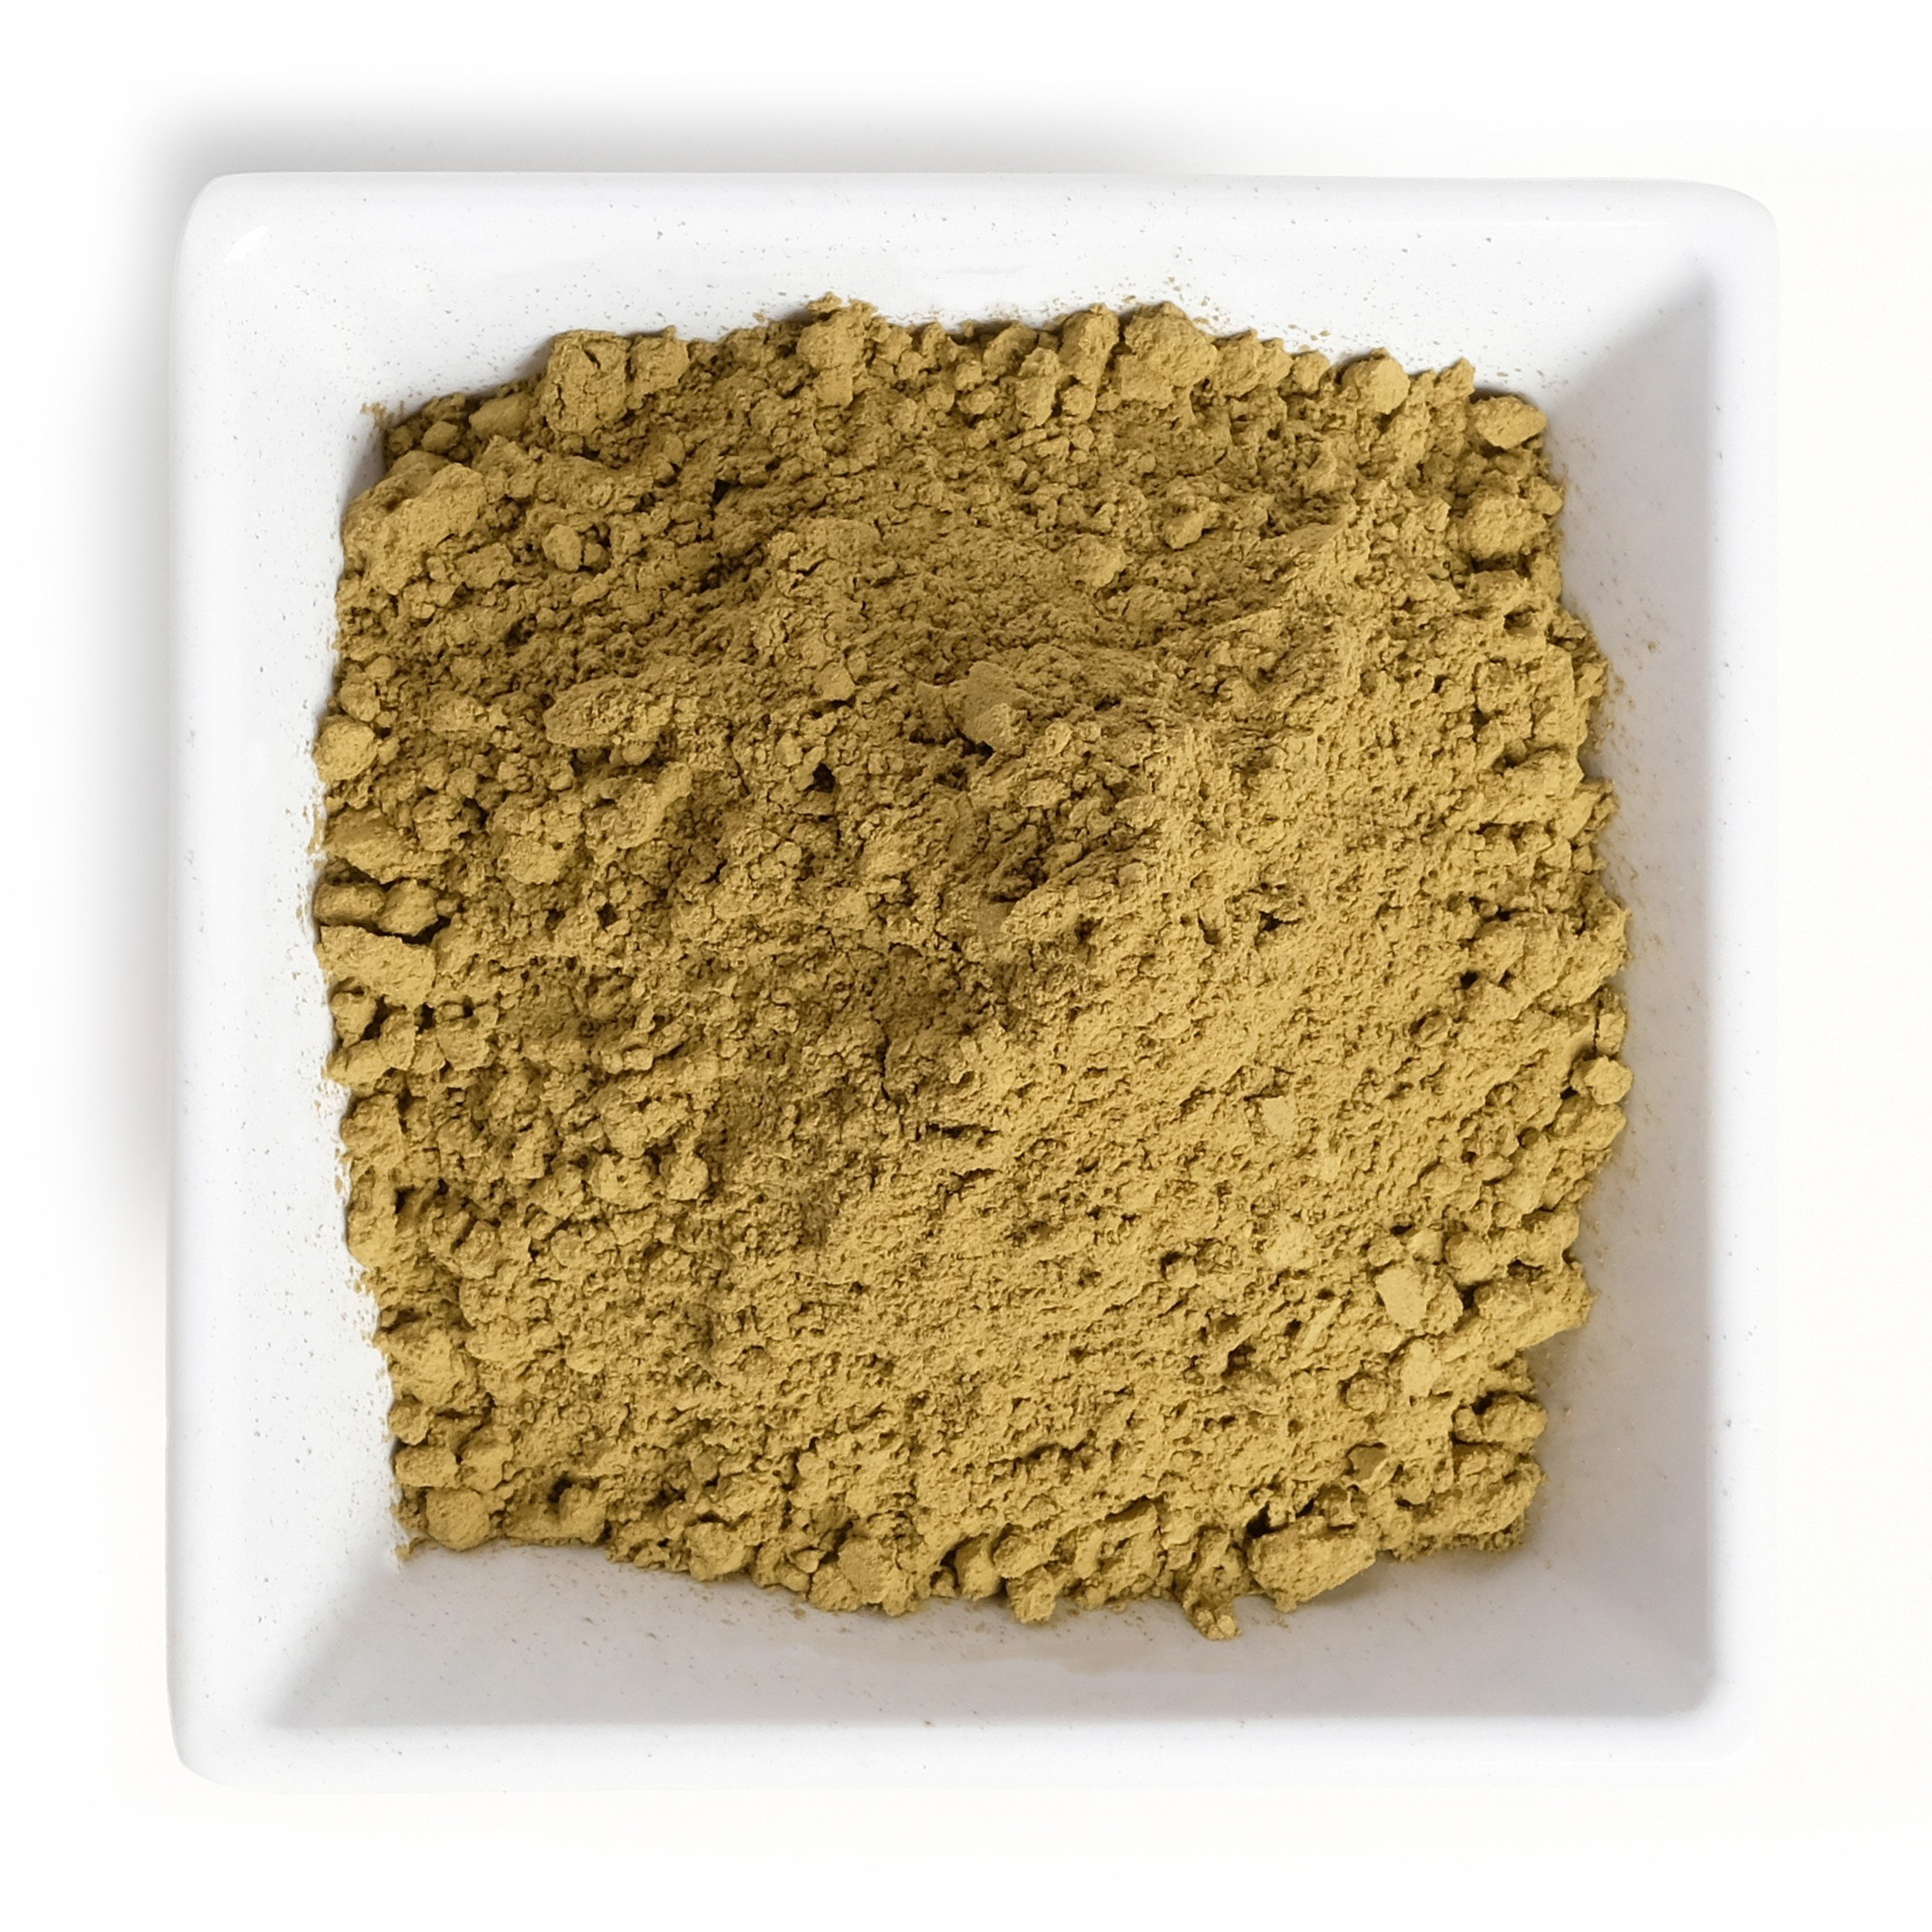 Maeng Da Thai Kratom Powder (Red Vein)